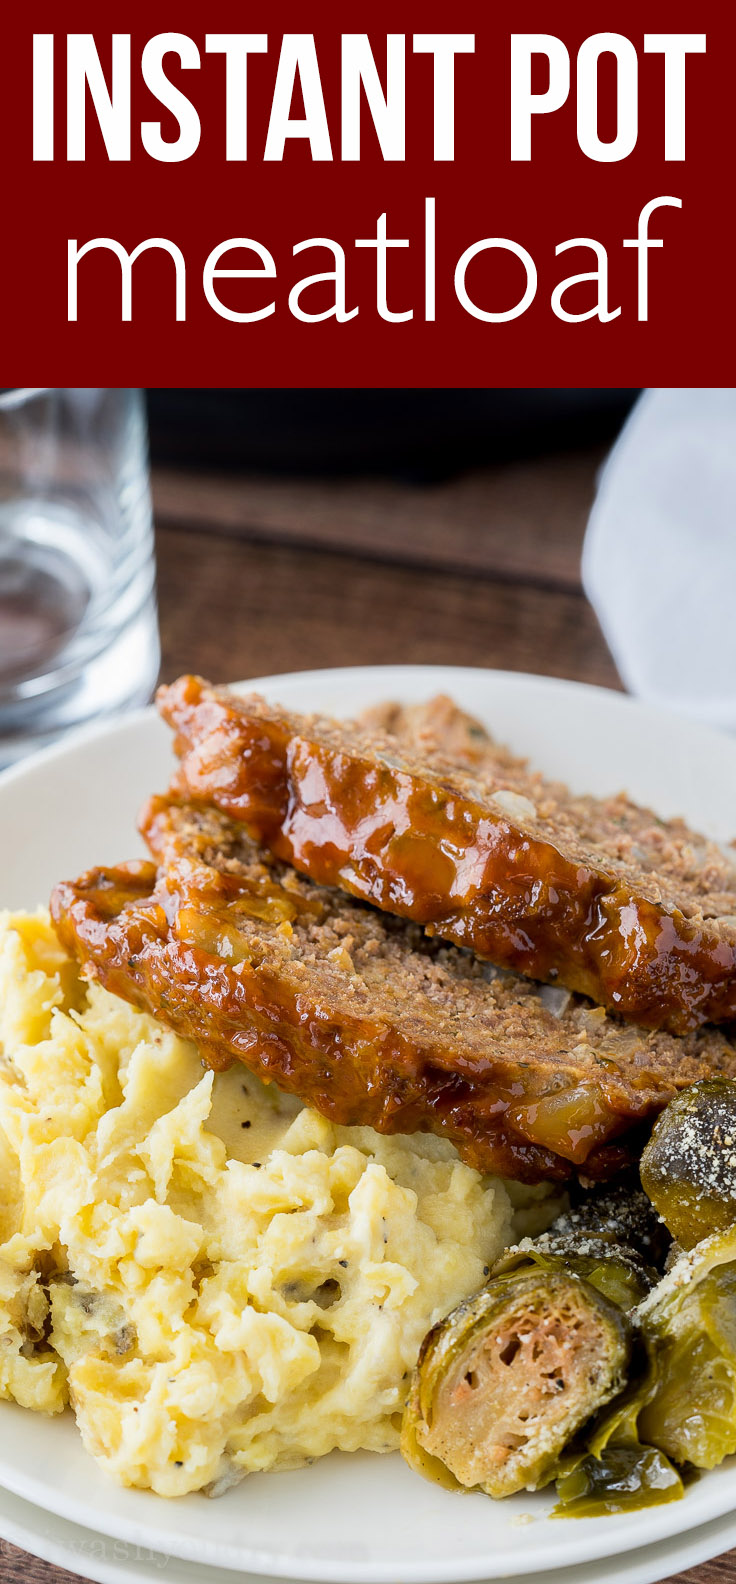 Super EASY Instant Pot Meatloaf Mashed Potatoes is cooked in just 20 minutes!